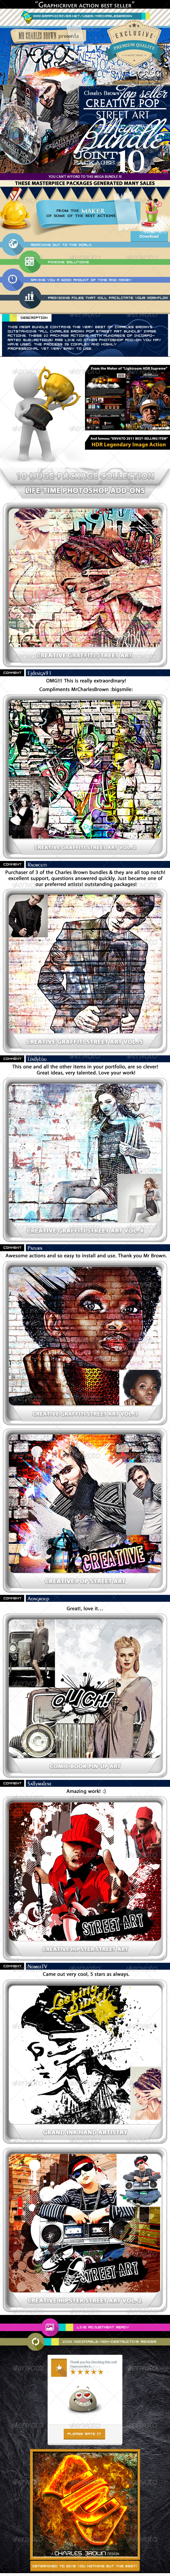 GraphicRiver All Charles Brown s Pop Street Art Bundle 6778757